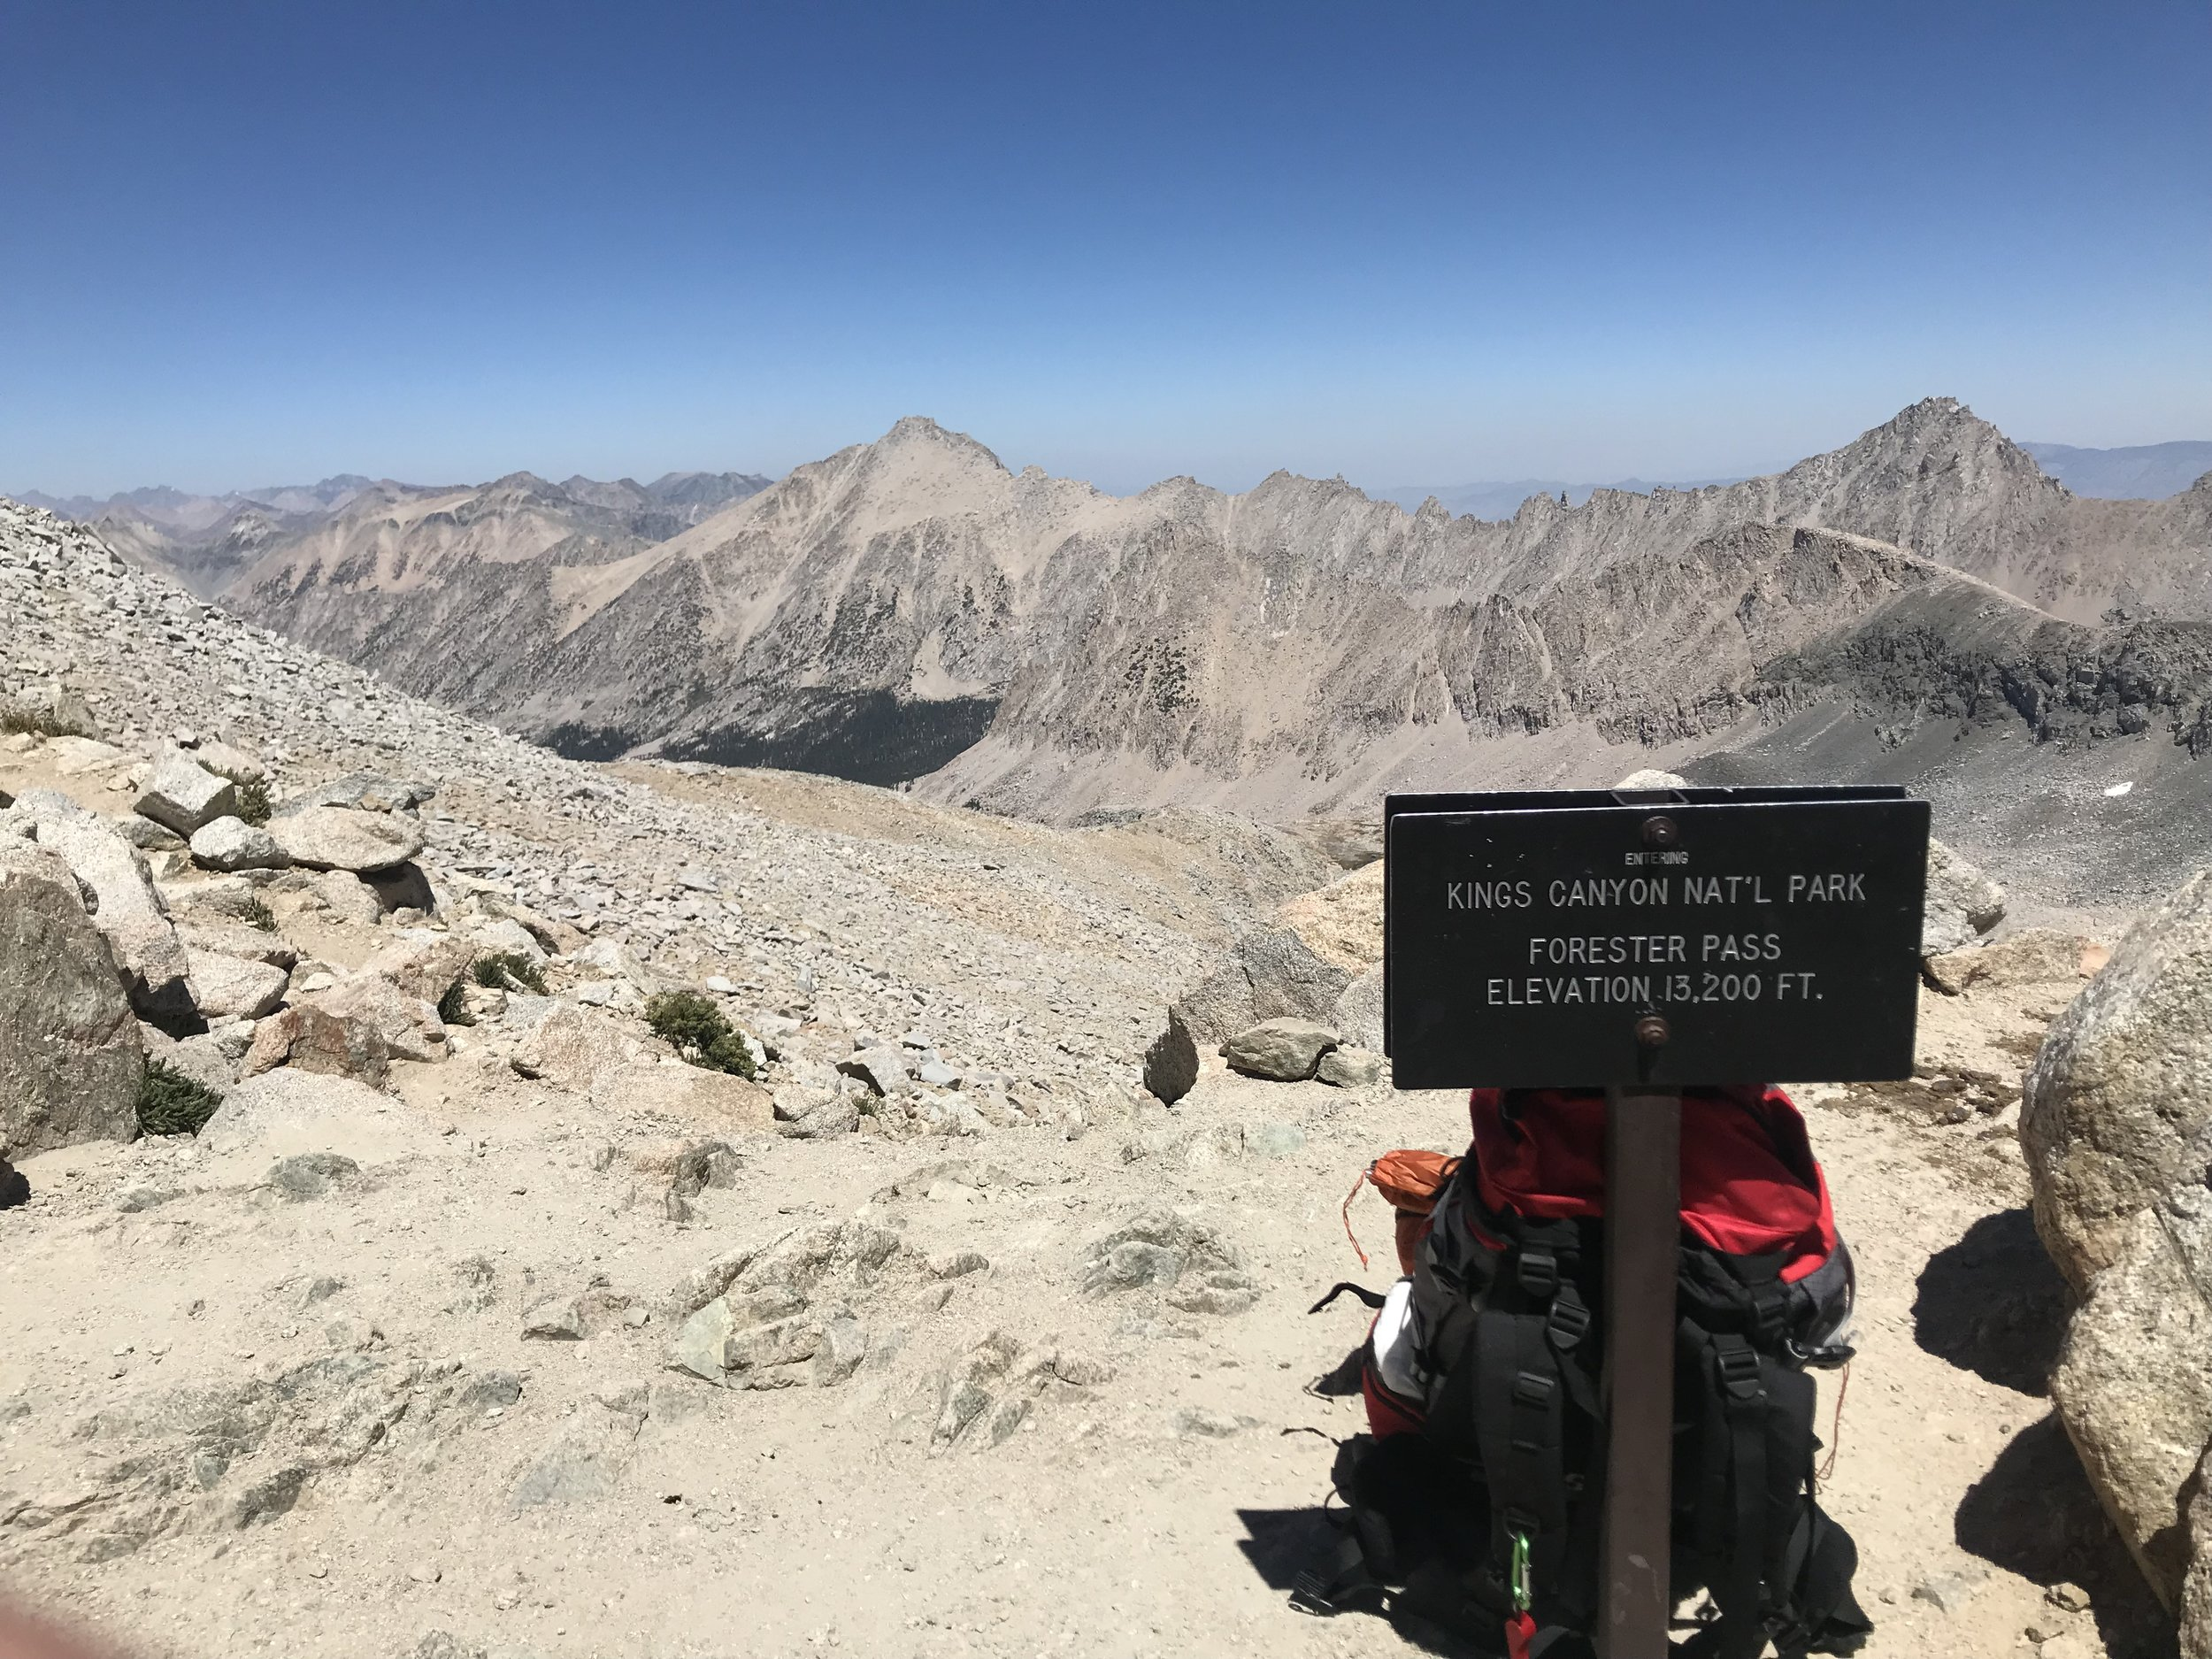 Transitioning from Sequoia to Kings Canyon National Parks.